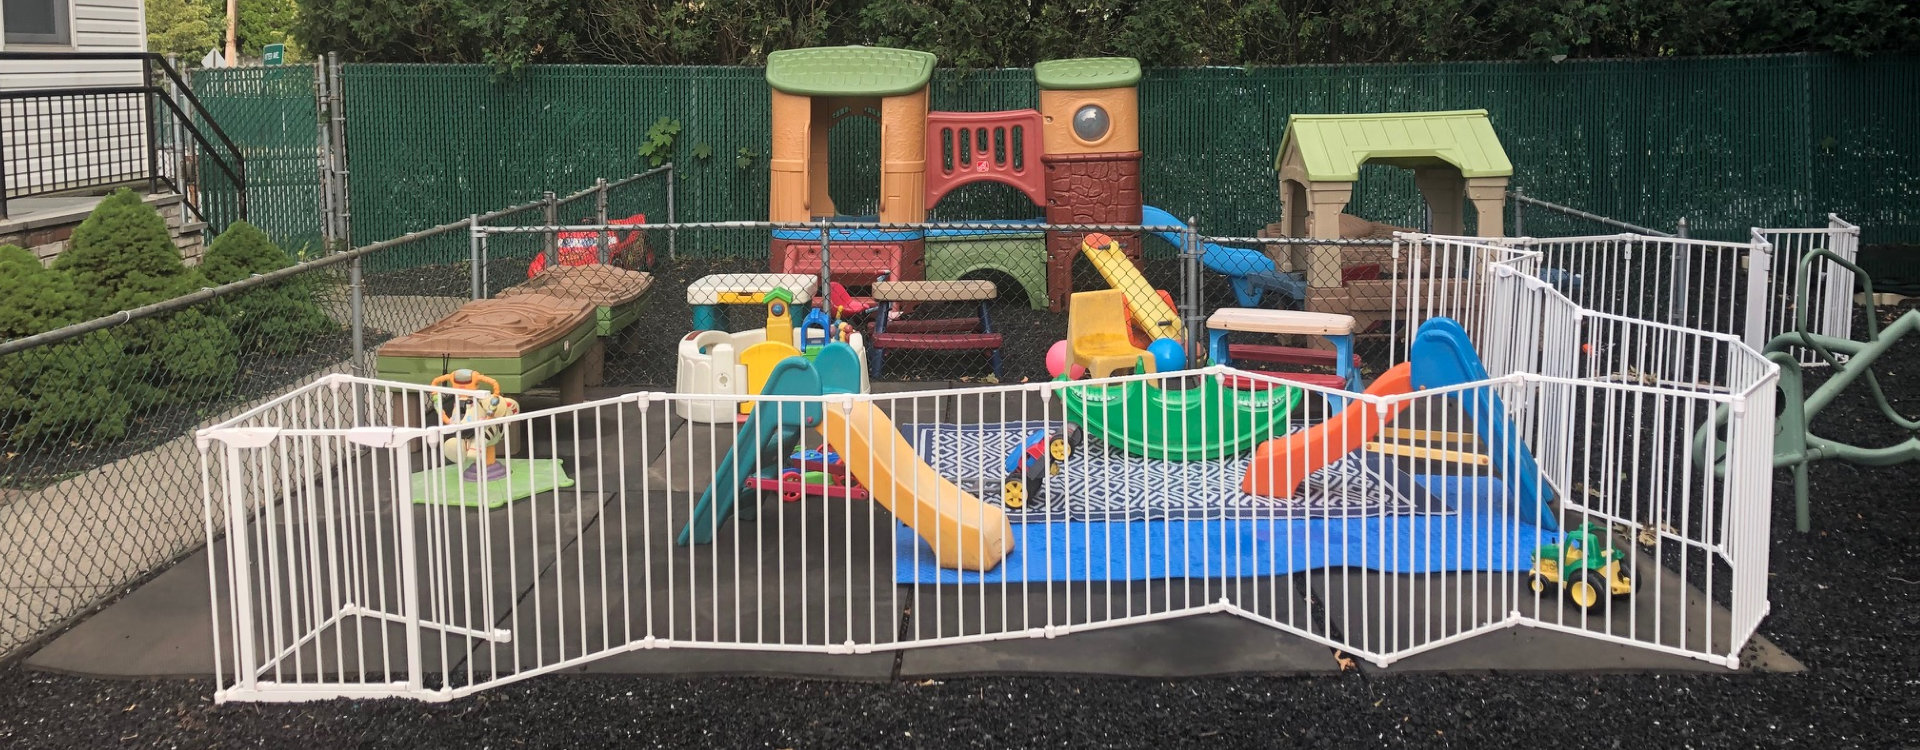 Baby Cubs Daycare, Inc. playground